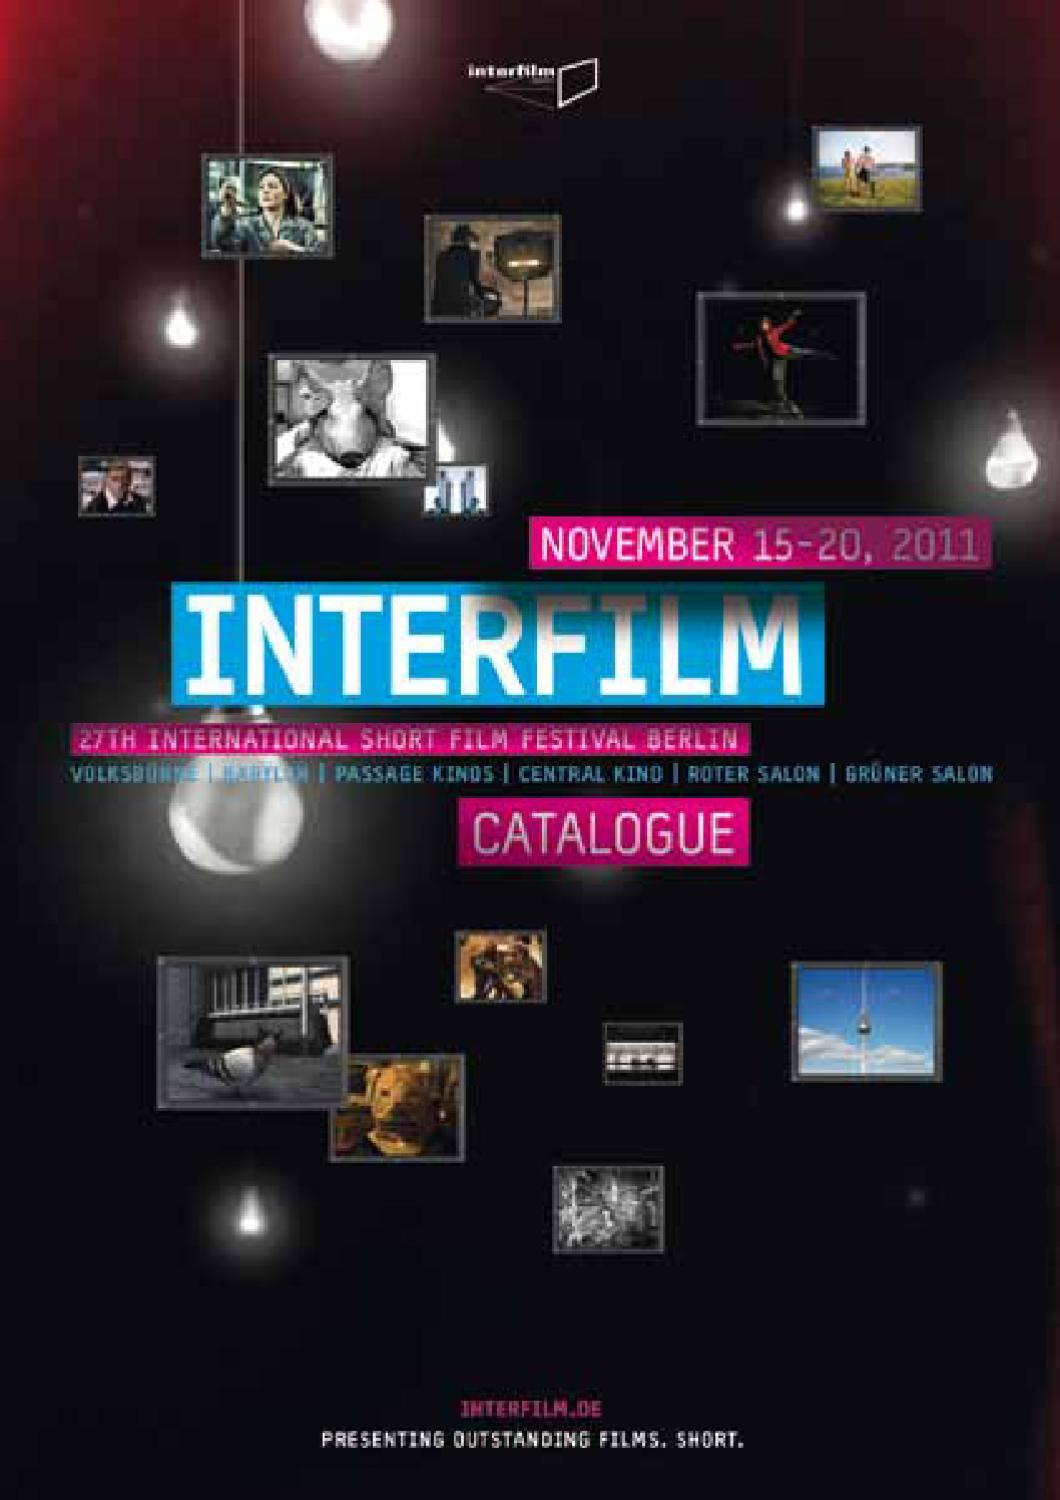 Issuu festival catalogue interfilm27 by interfilm berlin for Inter meuble tunisie catalogue 2011